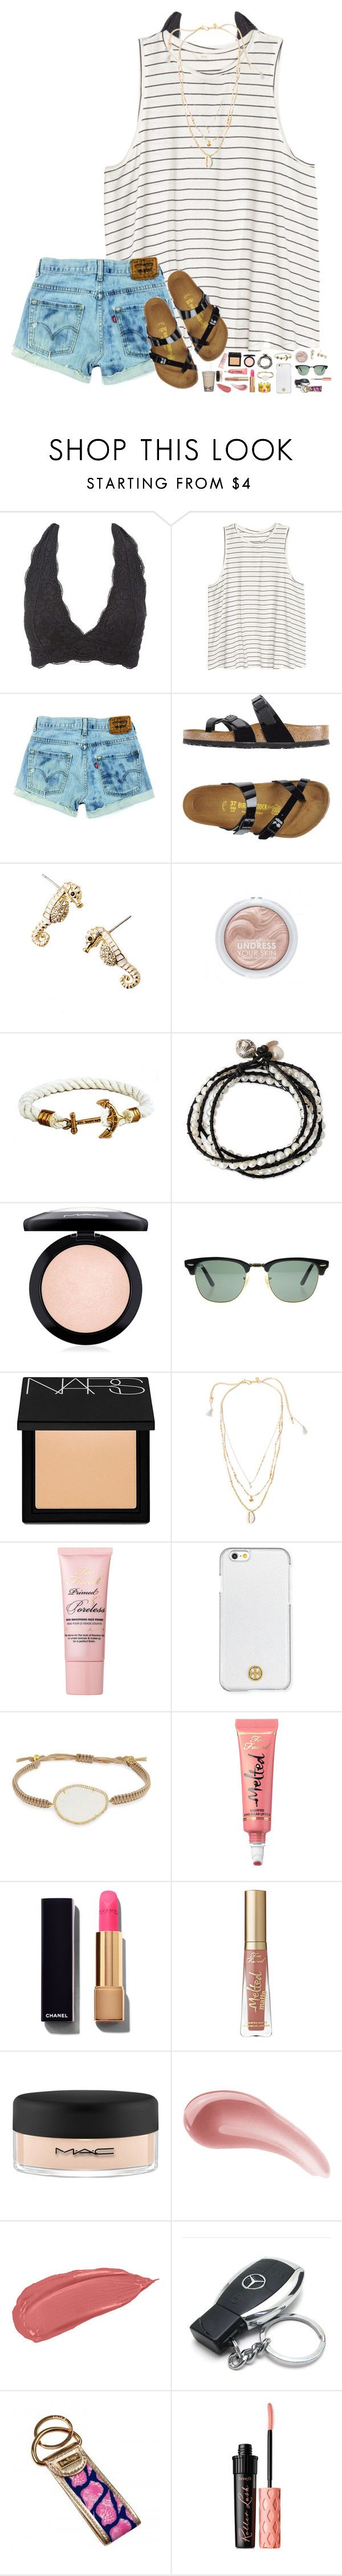 """your lies are bullets, your mouth's the gun..."" by hopemarlee ❤ liked on Polyvore featuring Charlotte Russe, Birkenstock, Lilly Pulitzer, NOVICA, MAC Cosmetics, Ray-Ban, NARS Cosmetics, Chan Luu, Too Faced Cosmetics and Tory Burch"